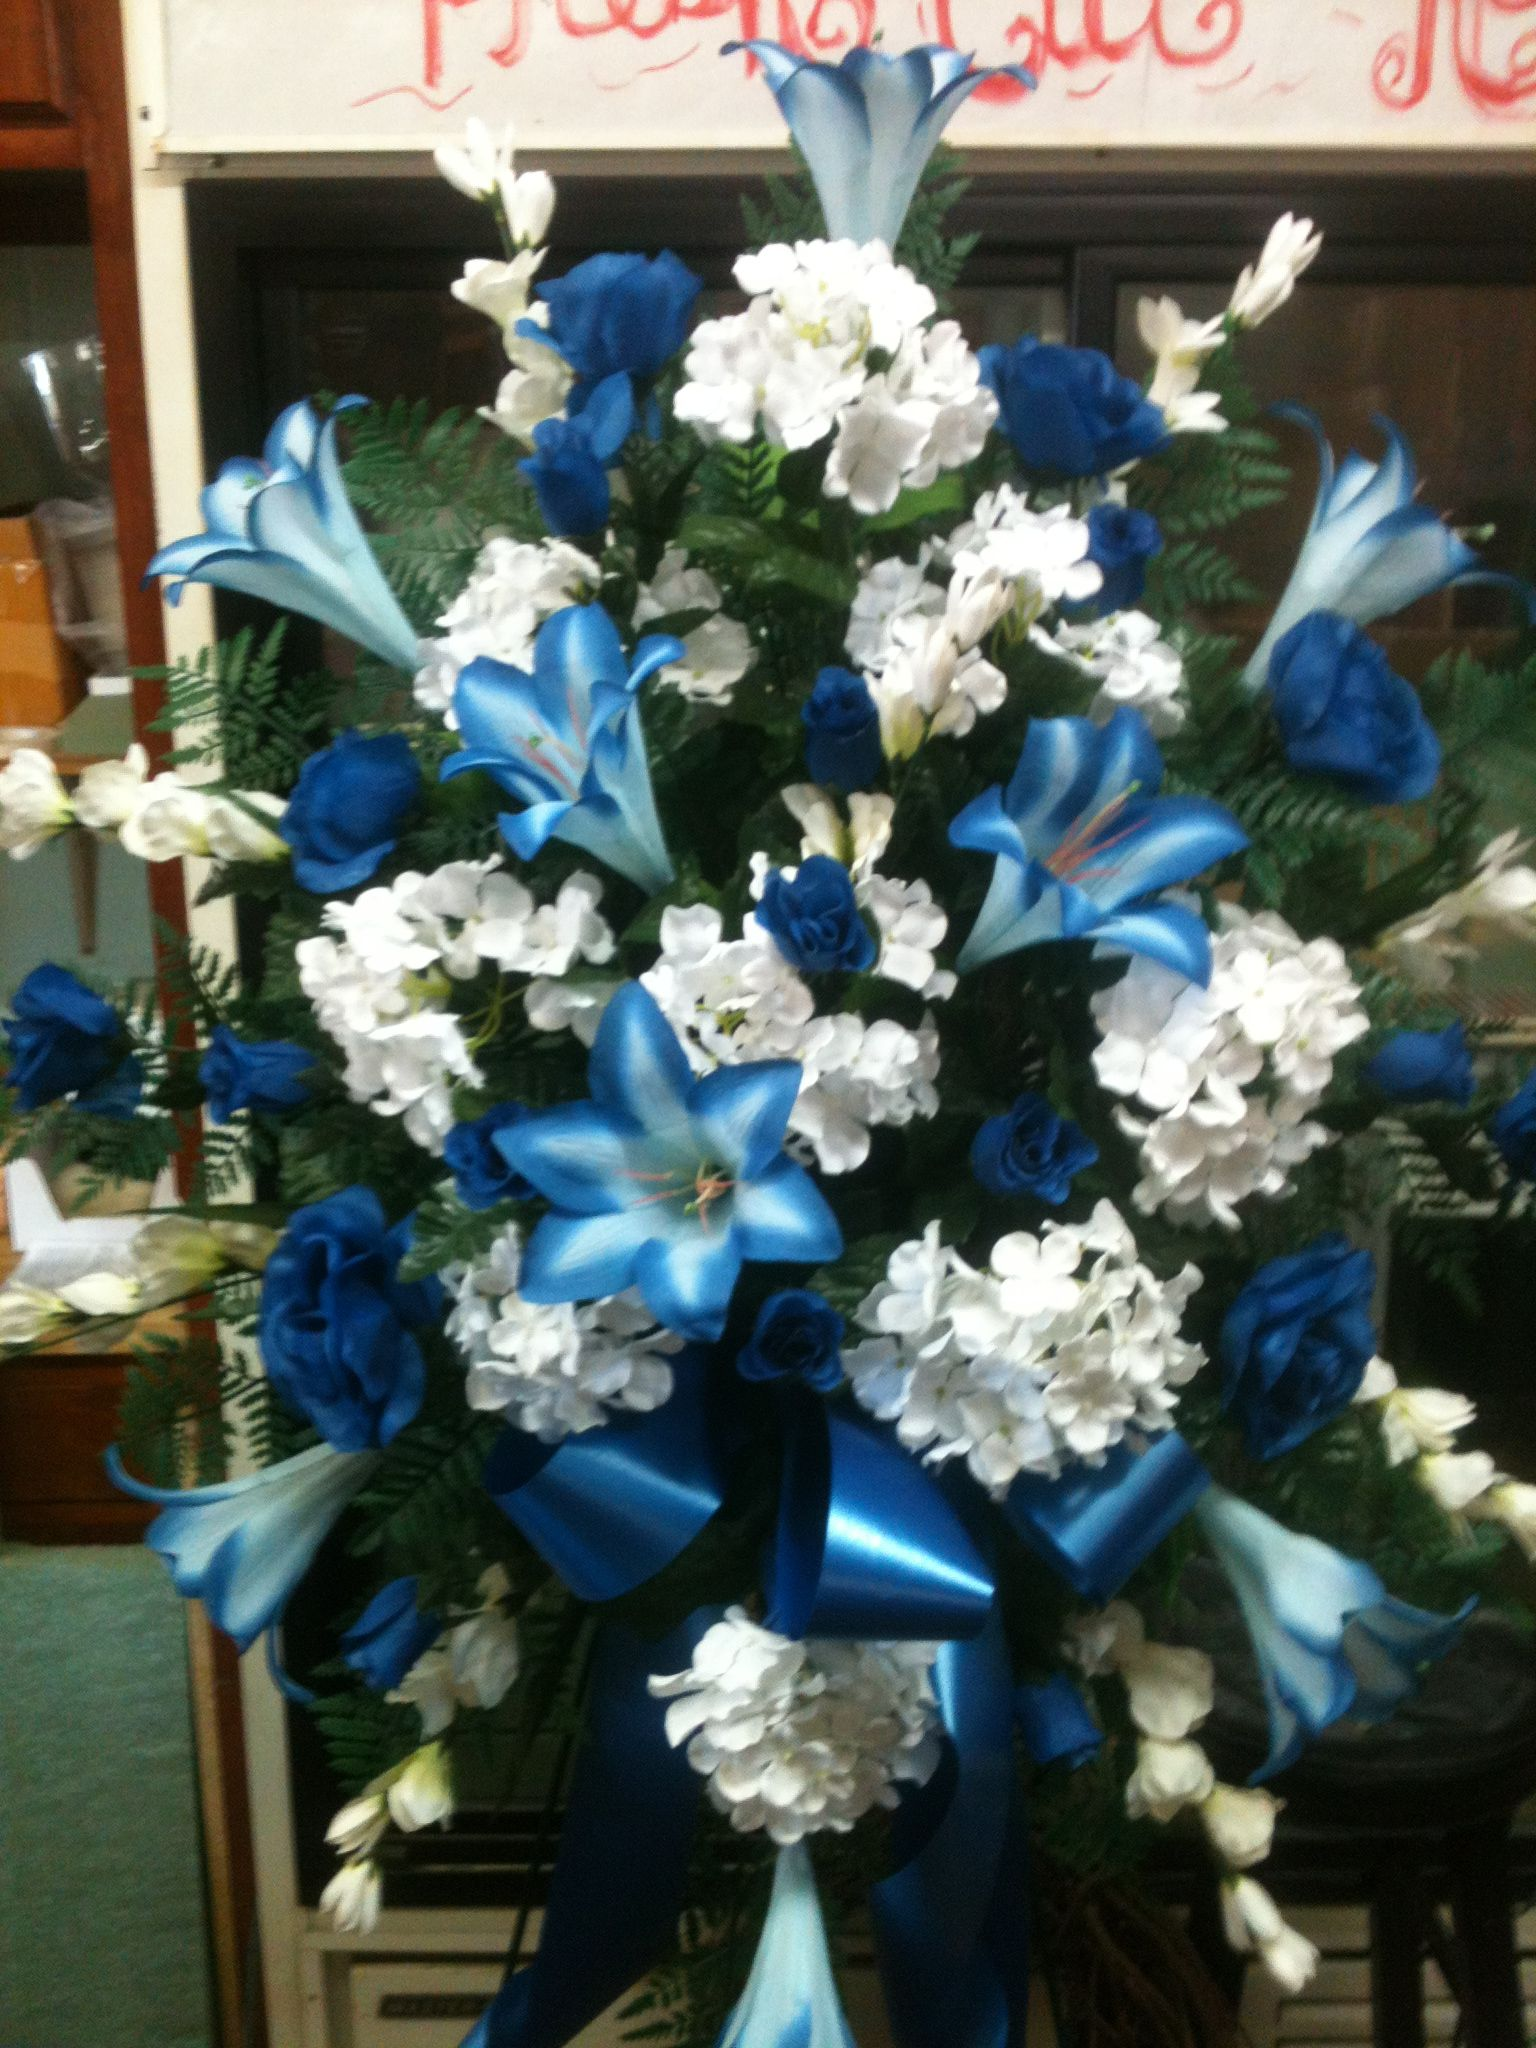 Masculine Silk Funeral Spray Funeral Floral Arrangements Memorial Flowers Funeral Floral